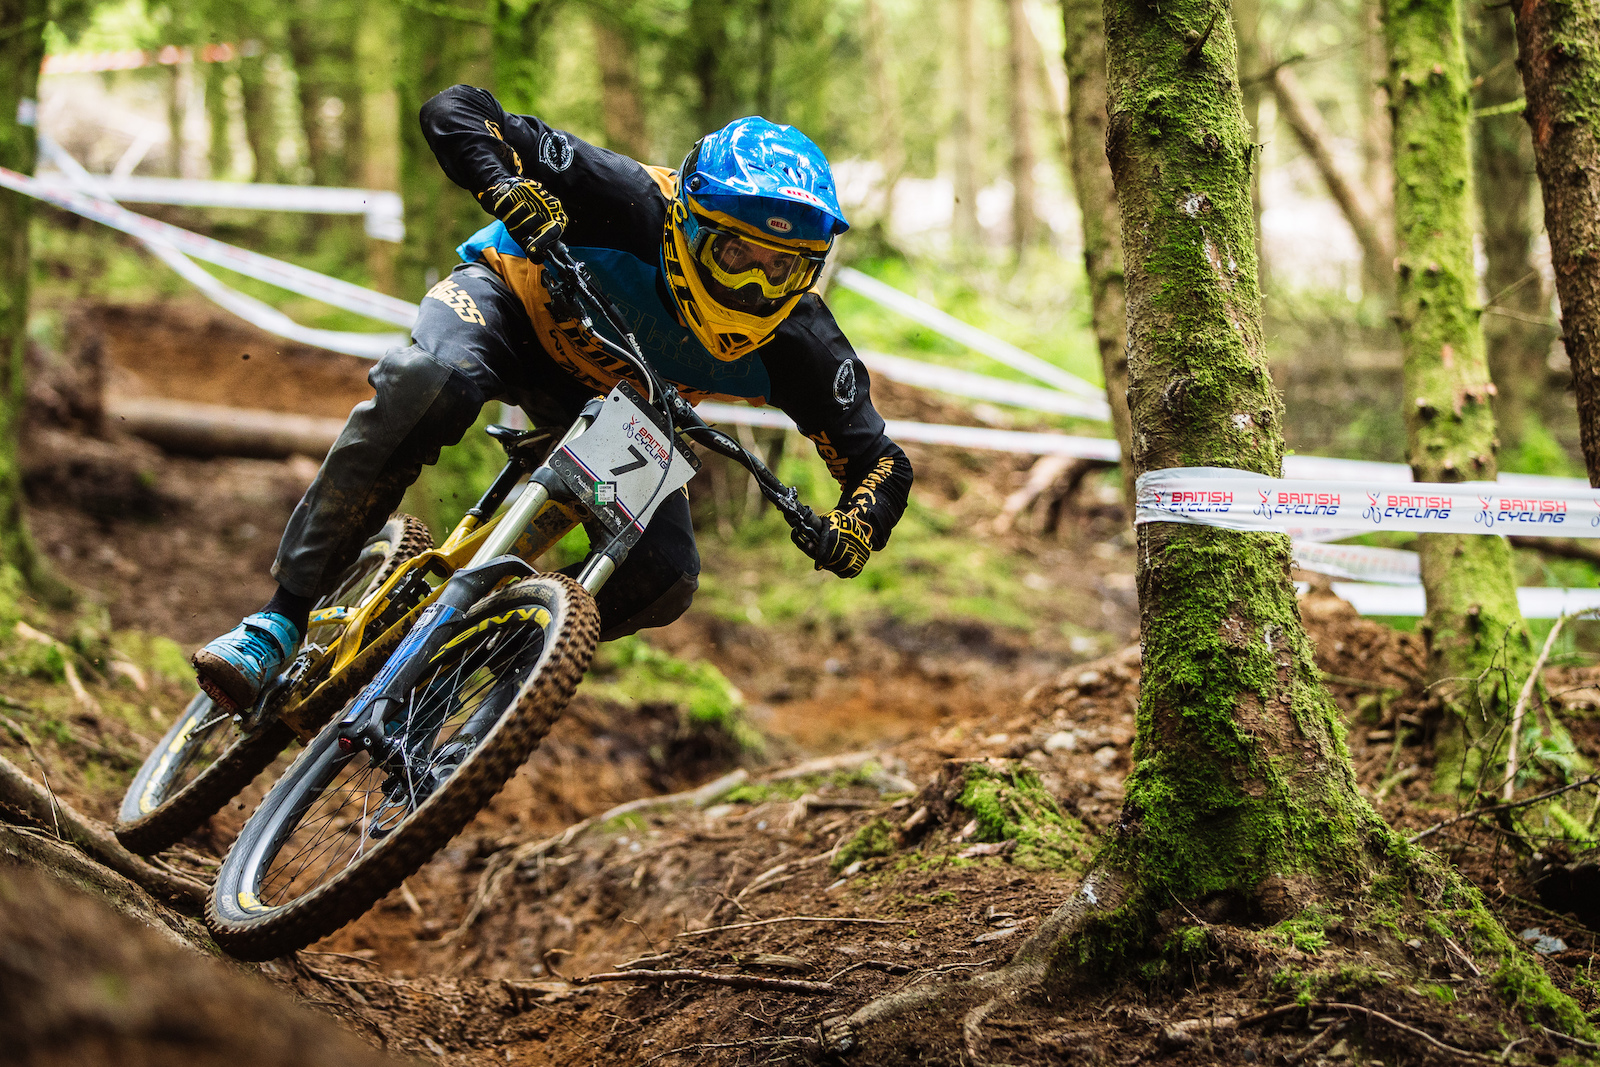 Phil Atwill is another rider who loves the loose nature of the surface. This is a real opportunity for Phil to show he has the raw speed to match his insane bike handling skills.